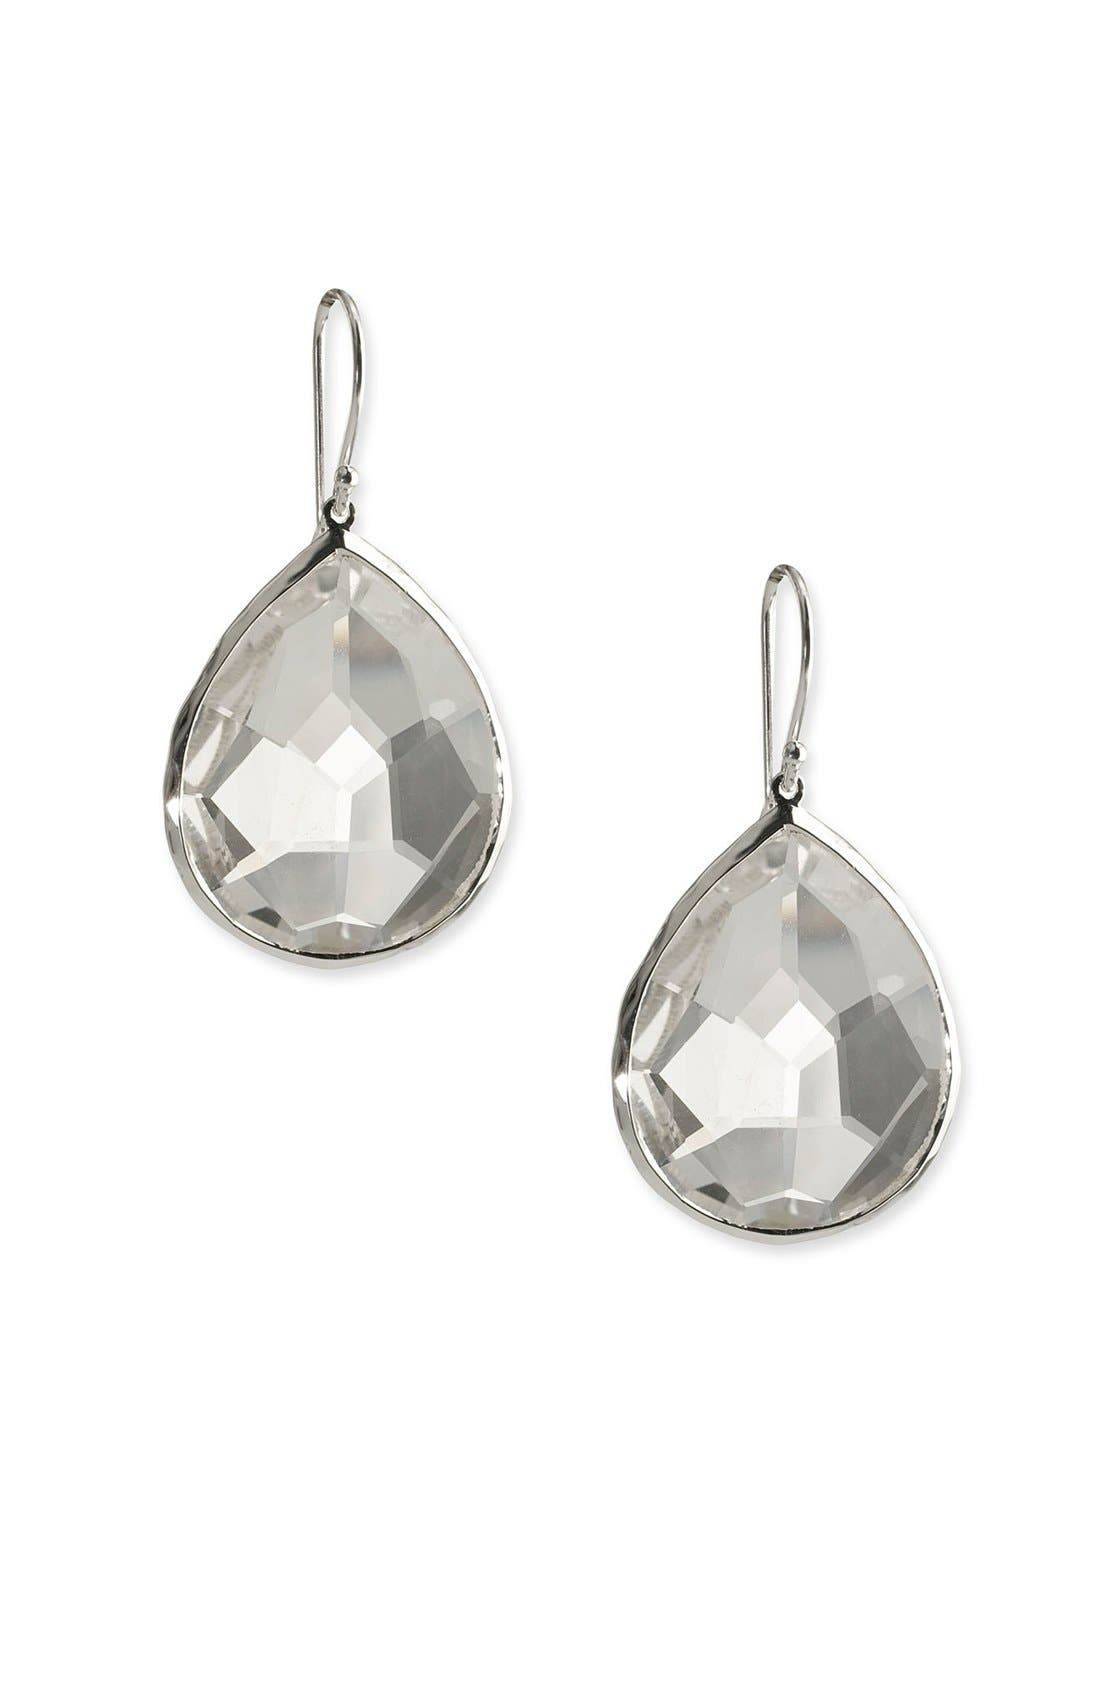 Alternate Image 1 Selected - Ippolita 'Wonderland' Teardrop Earrings (Online Only)